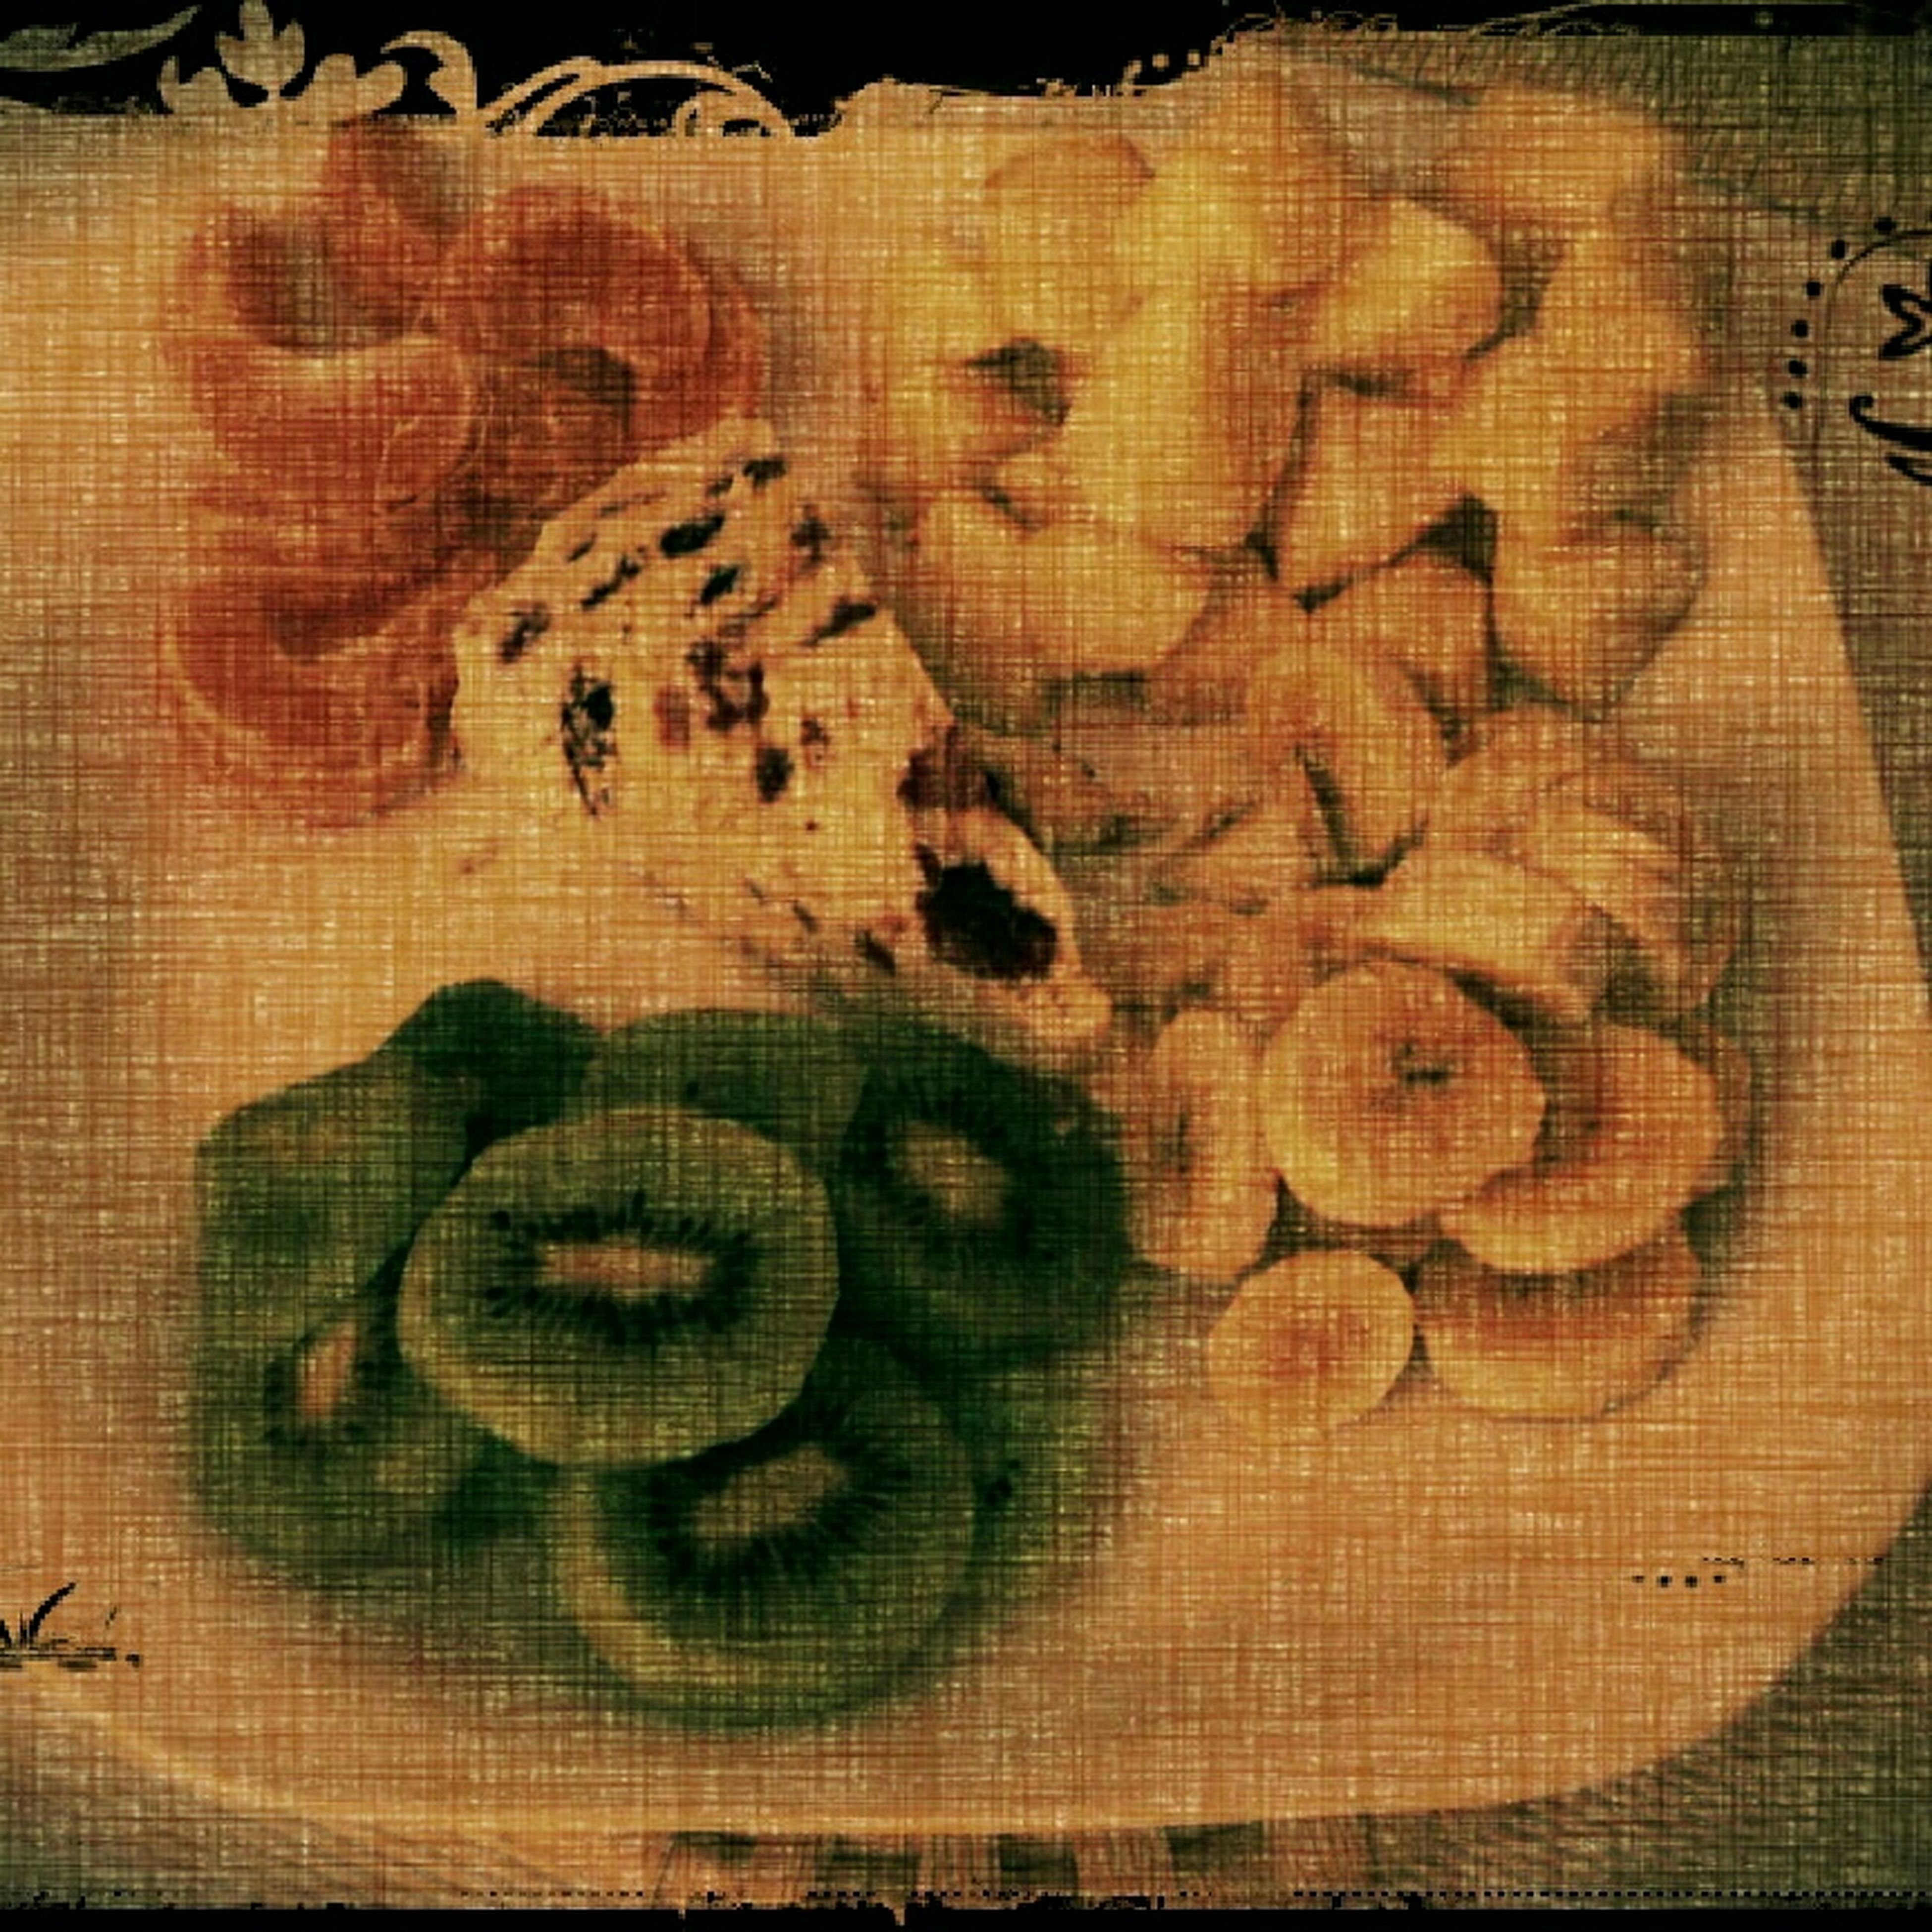 indoors, still life, close-up, high angle view, creativity, art and craft, art, pattern, full frame, table, textured, no people, design, backgrounds, textile, fabric, floral pattern, directly above, food and drink, animal representation